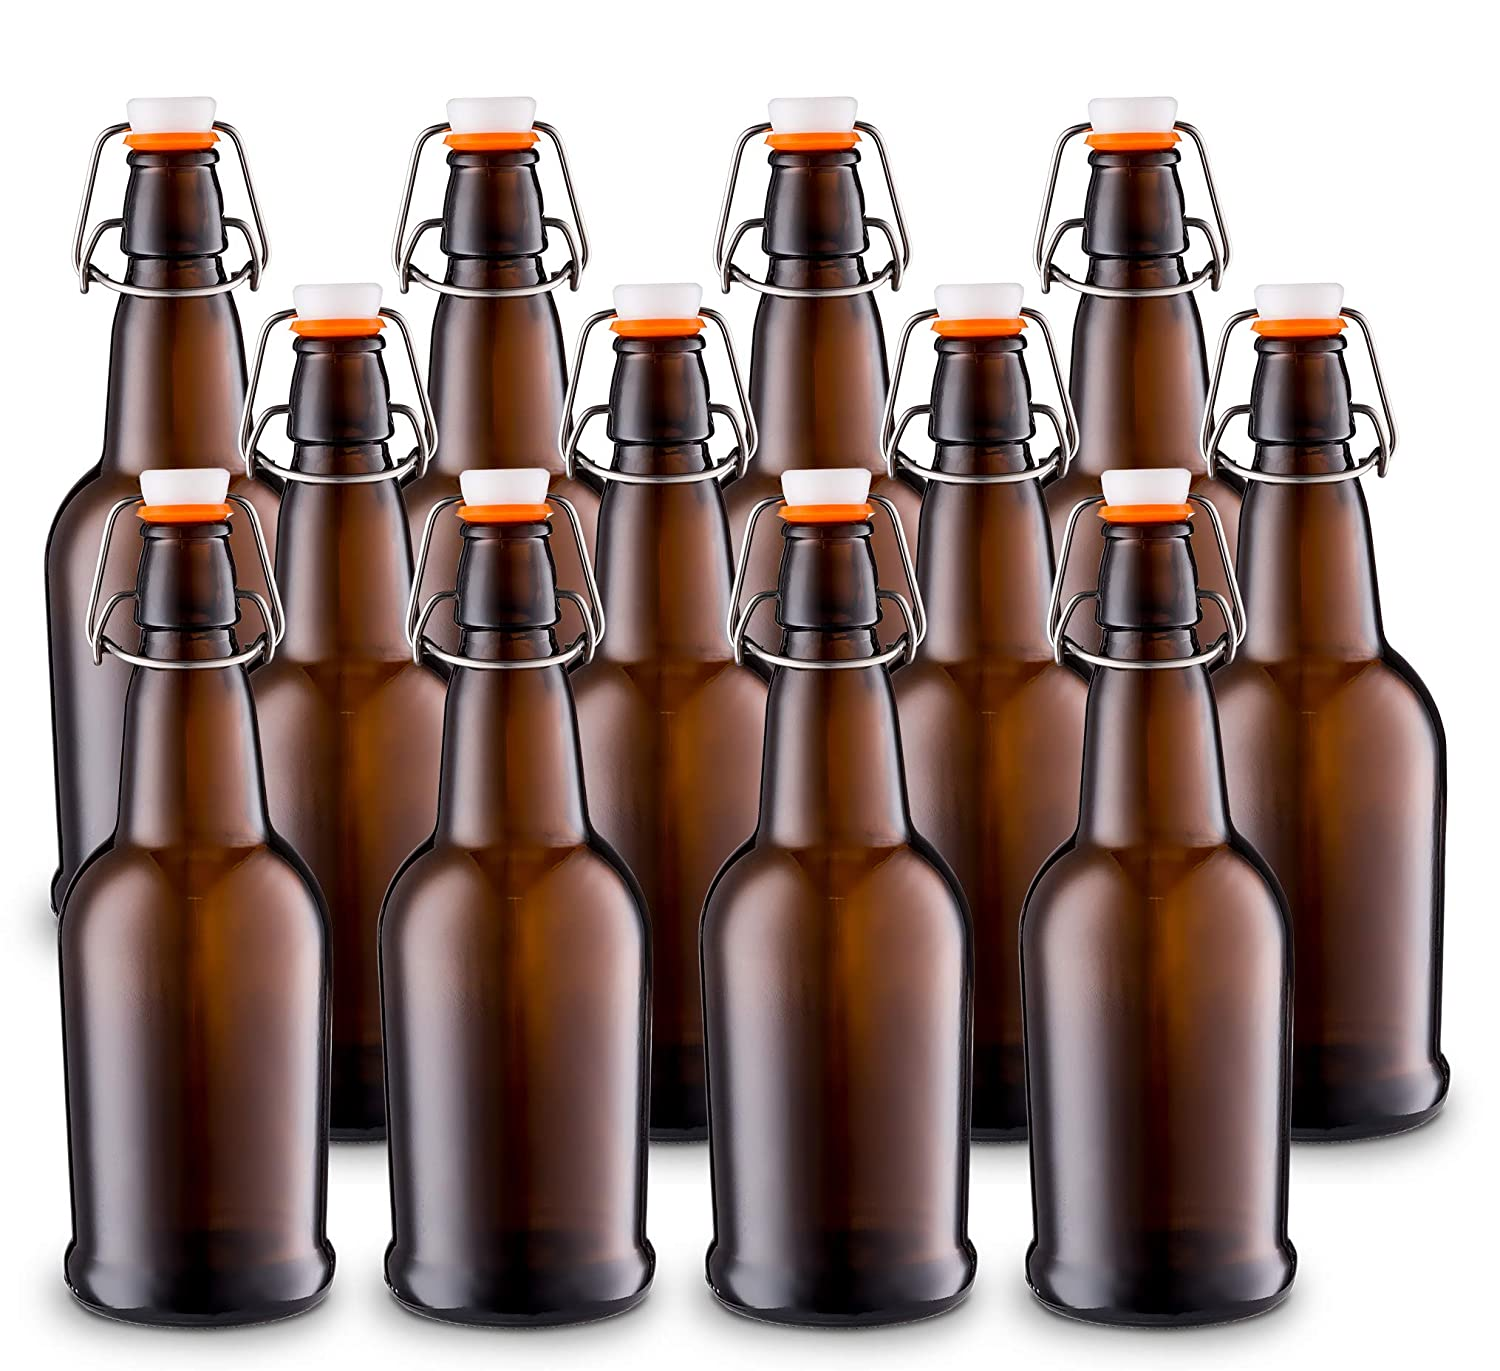 Home Brewing Glass Beer Bottle with Easy Wire Swing Cap & Airtight Rubber Seal -Amber- 16oz - Case of 12 - by Tiabo COMINHKPR136134